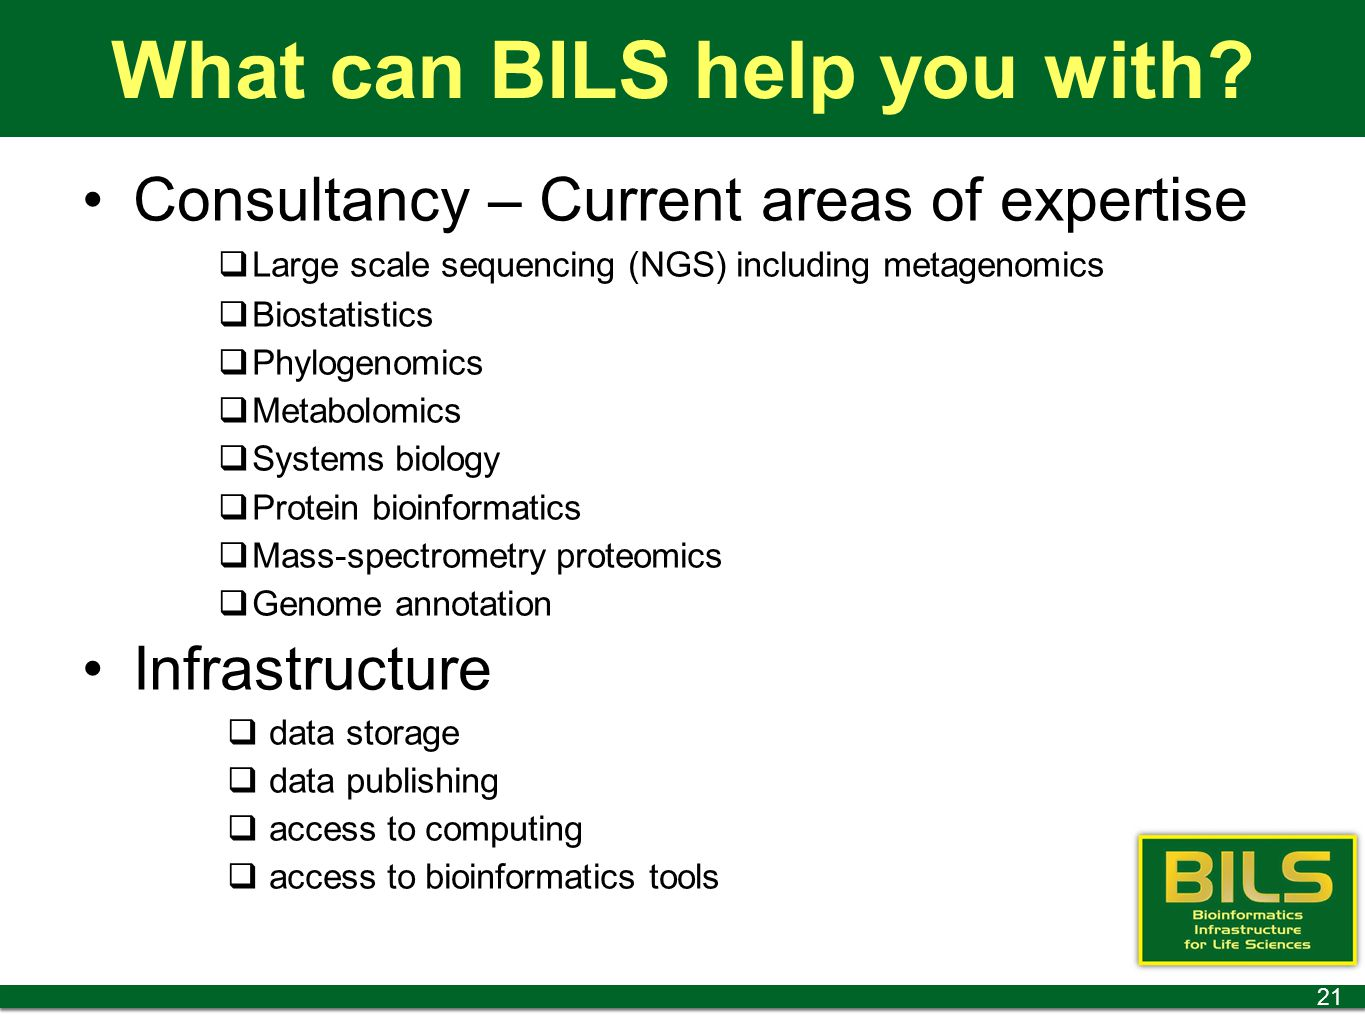 What can BILS help you with